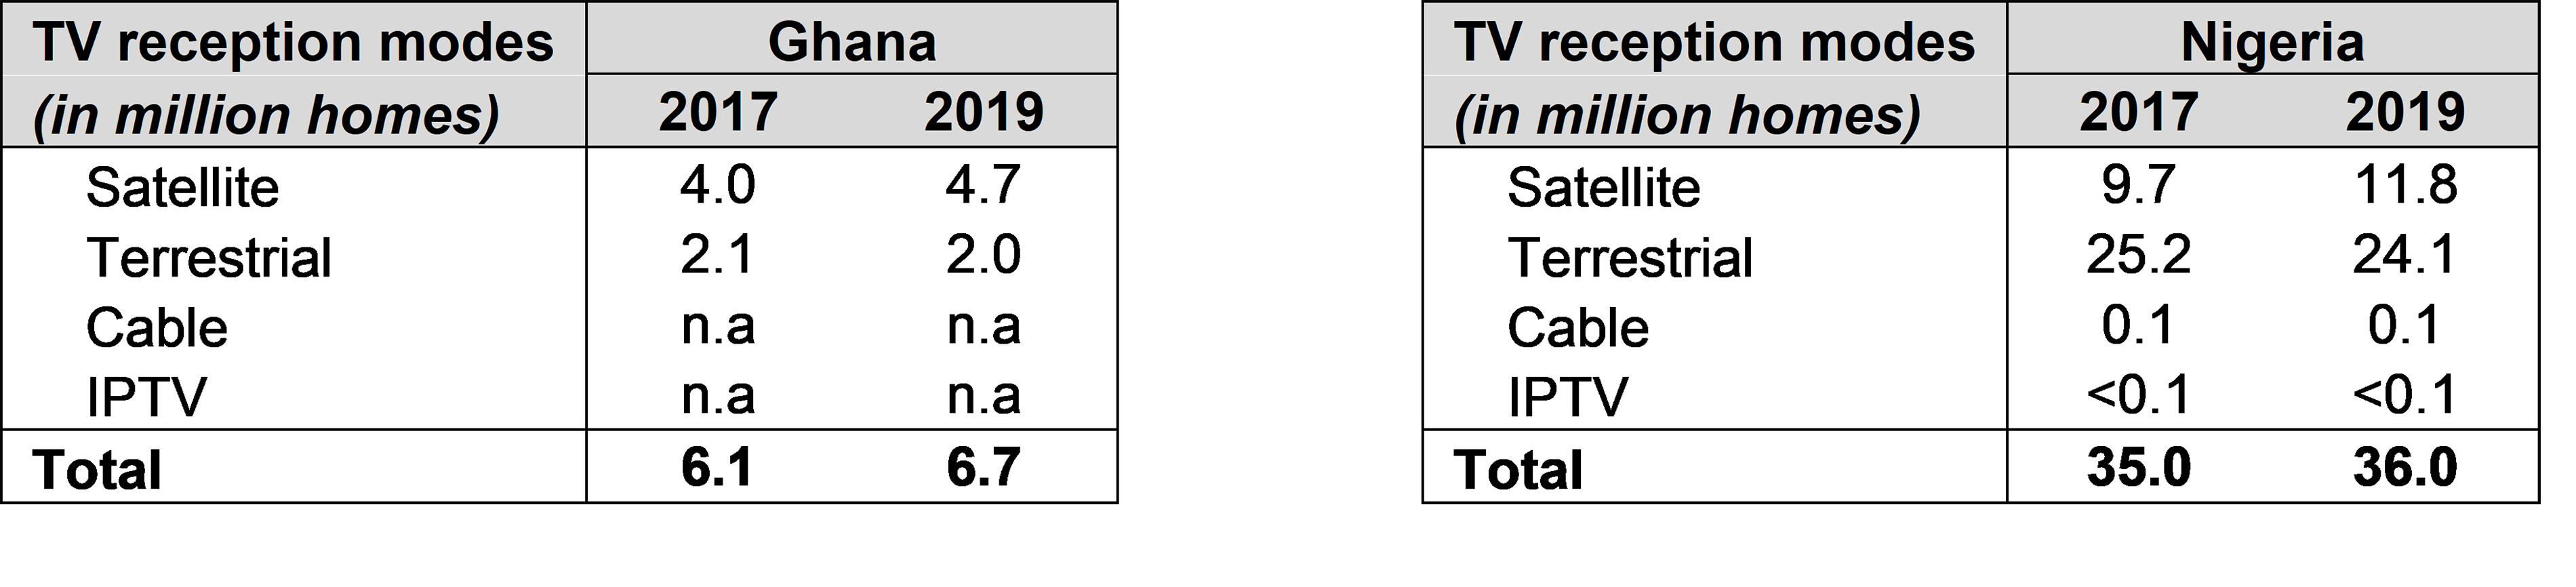 TV reception modes